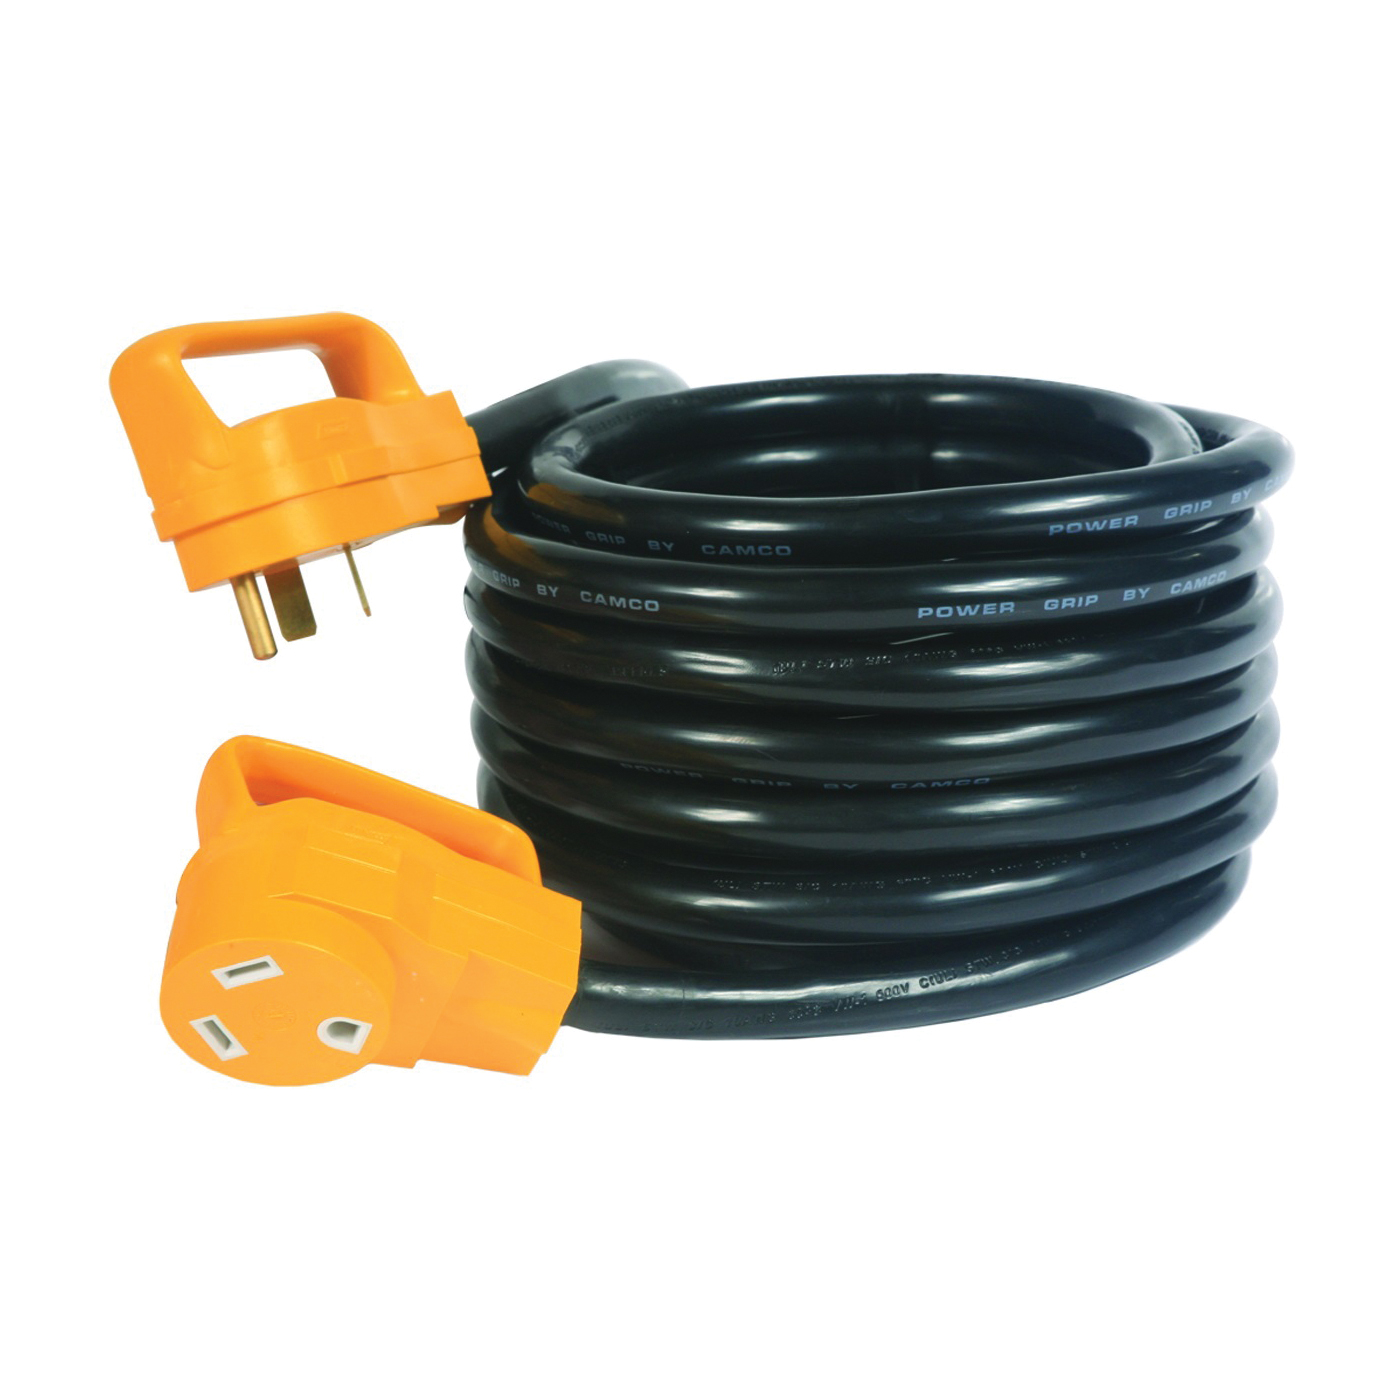 Picture of CAMCO 55191 Extension Cord, 10 ga Cable, 25 ft L, Male, Female, Black Jacket